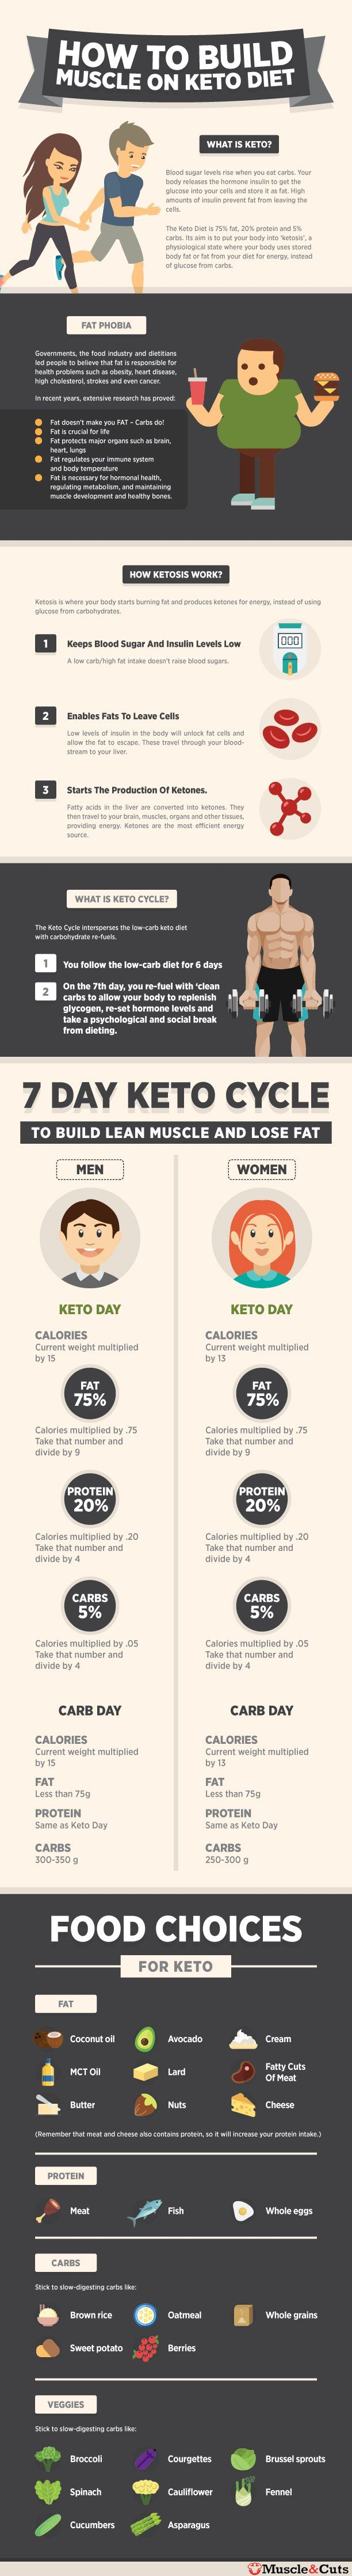 How To Build Muscle On Keto Cycle Diet Ketocycle Muscleonketo Keto Diet Keto Diet Recipes